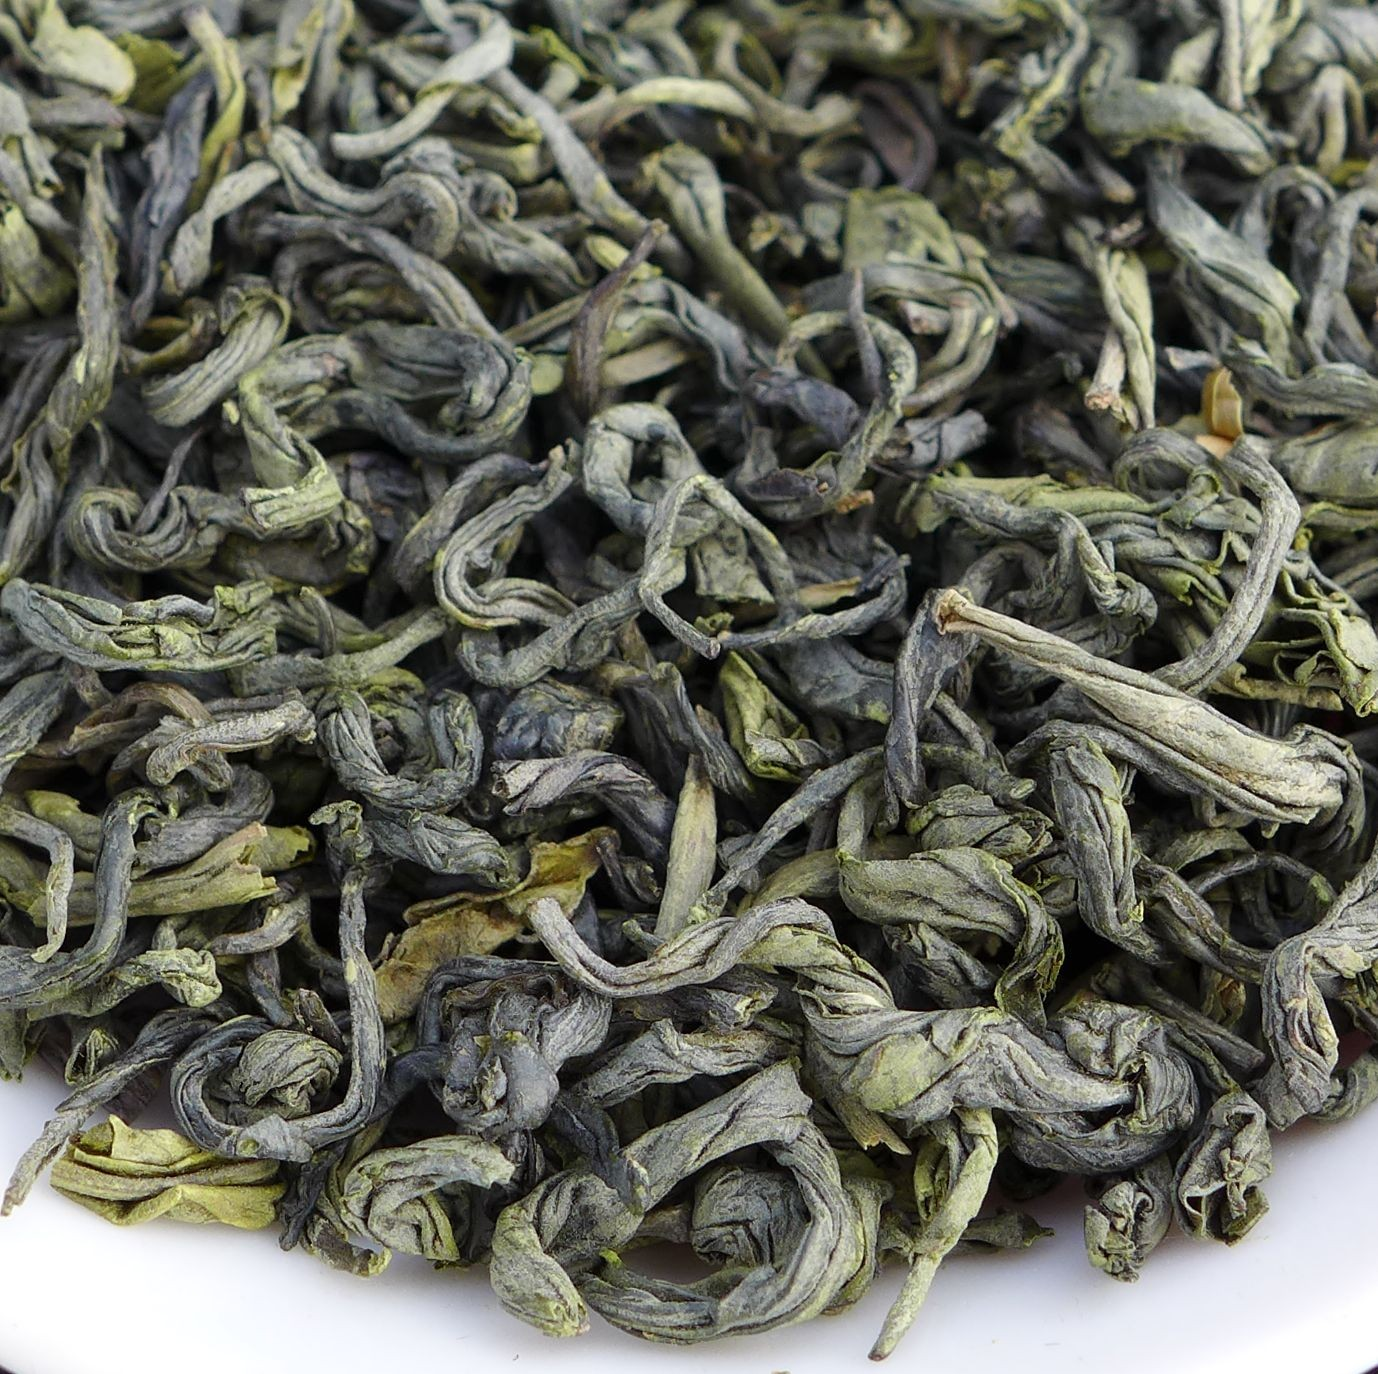 Jiangxi High Mountain Organic Bi Luo Chun Green Tea from Da Zhang Mountain * Spring 2015